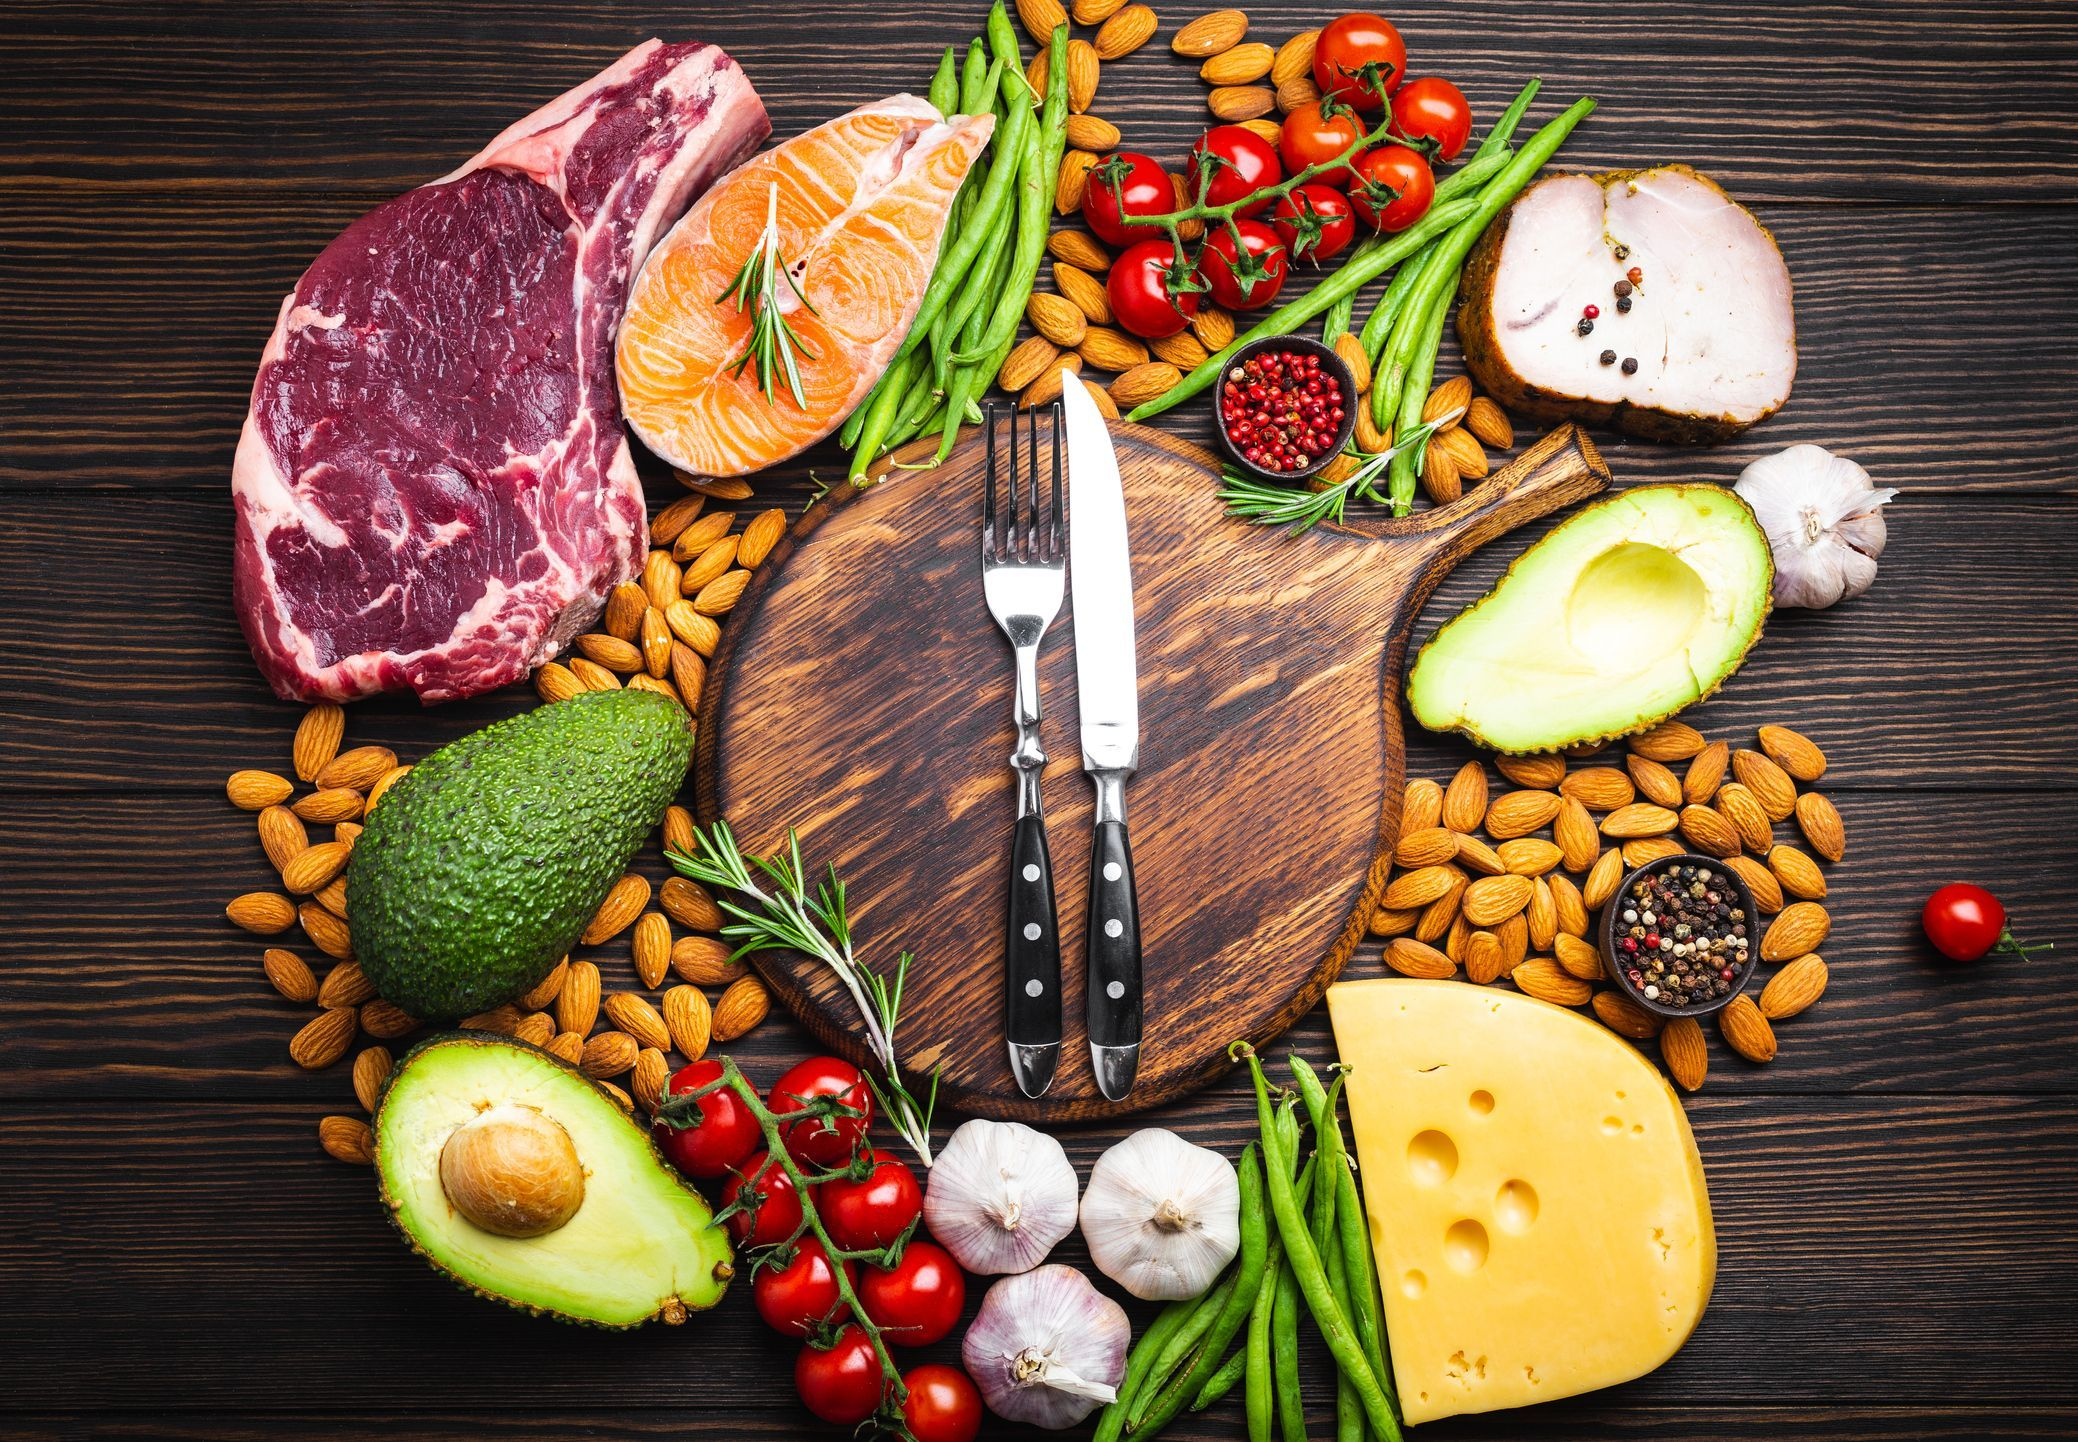 6 Carbohydrates That Won't Throw You Out of Ketosis